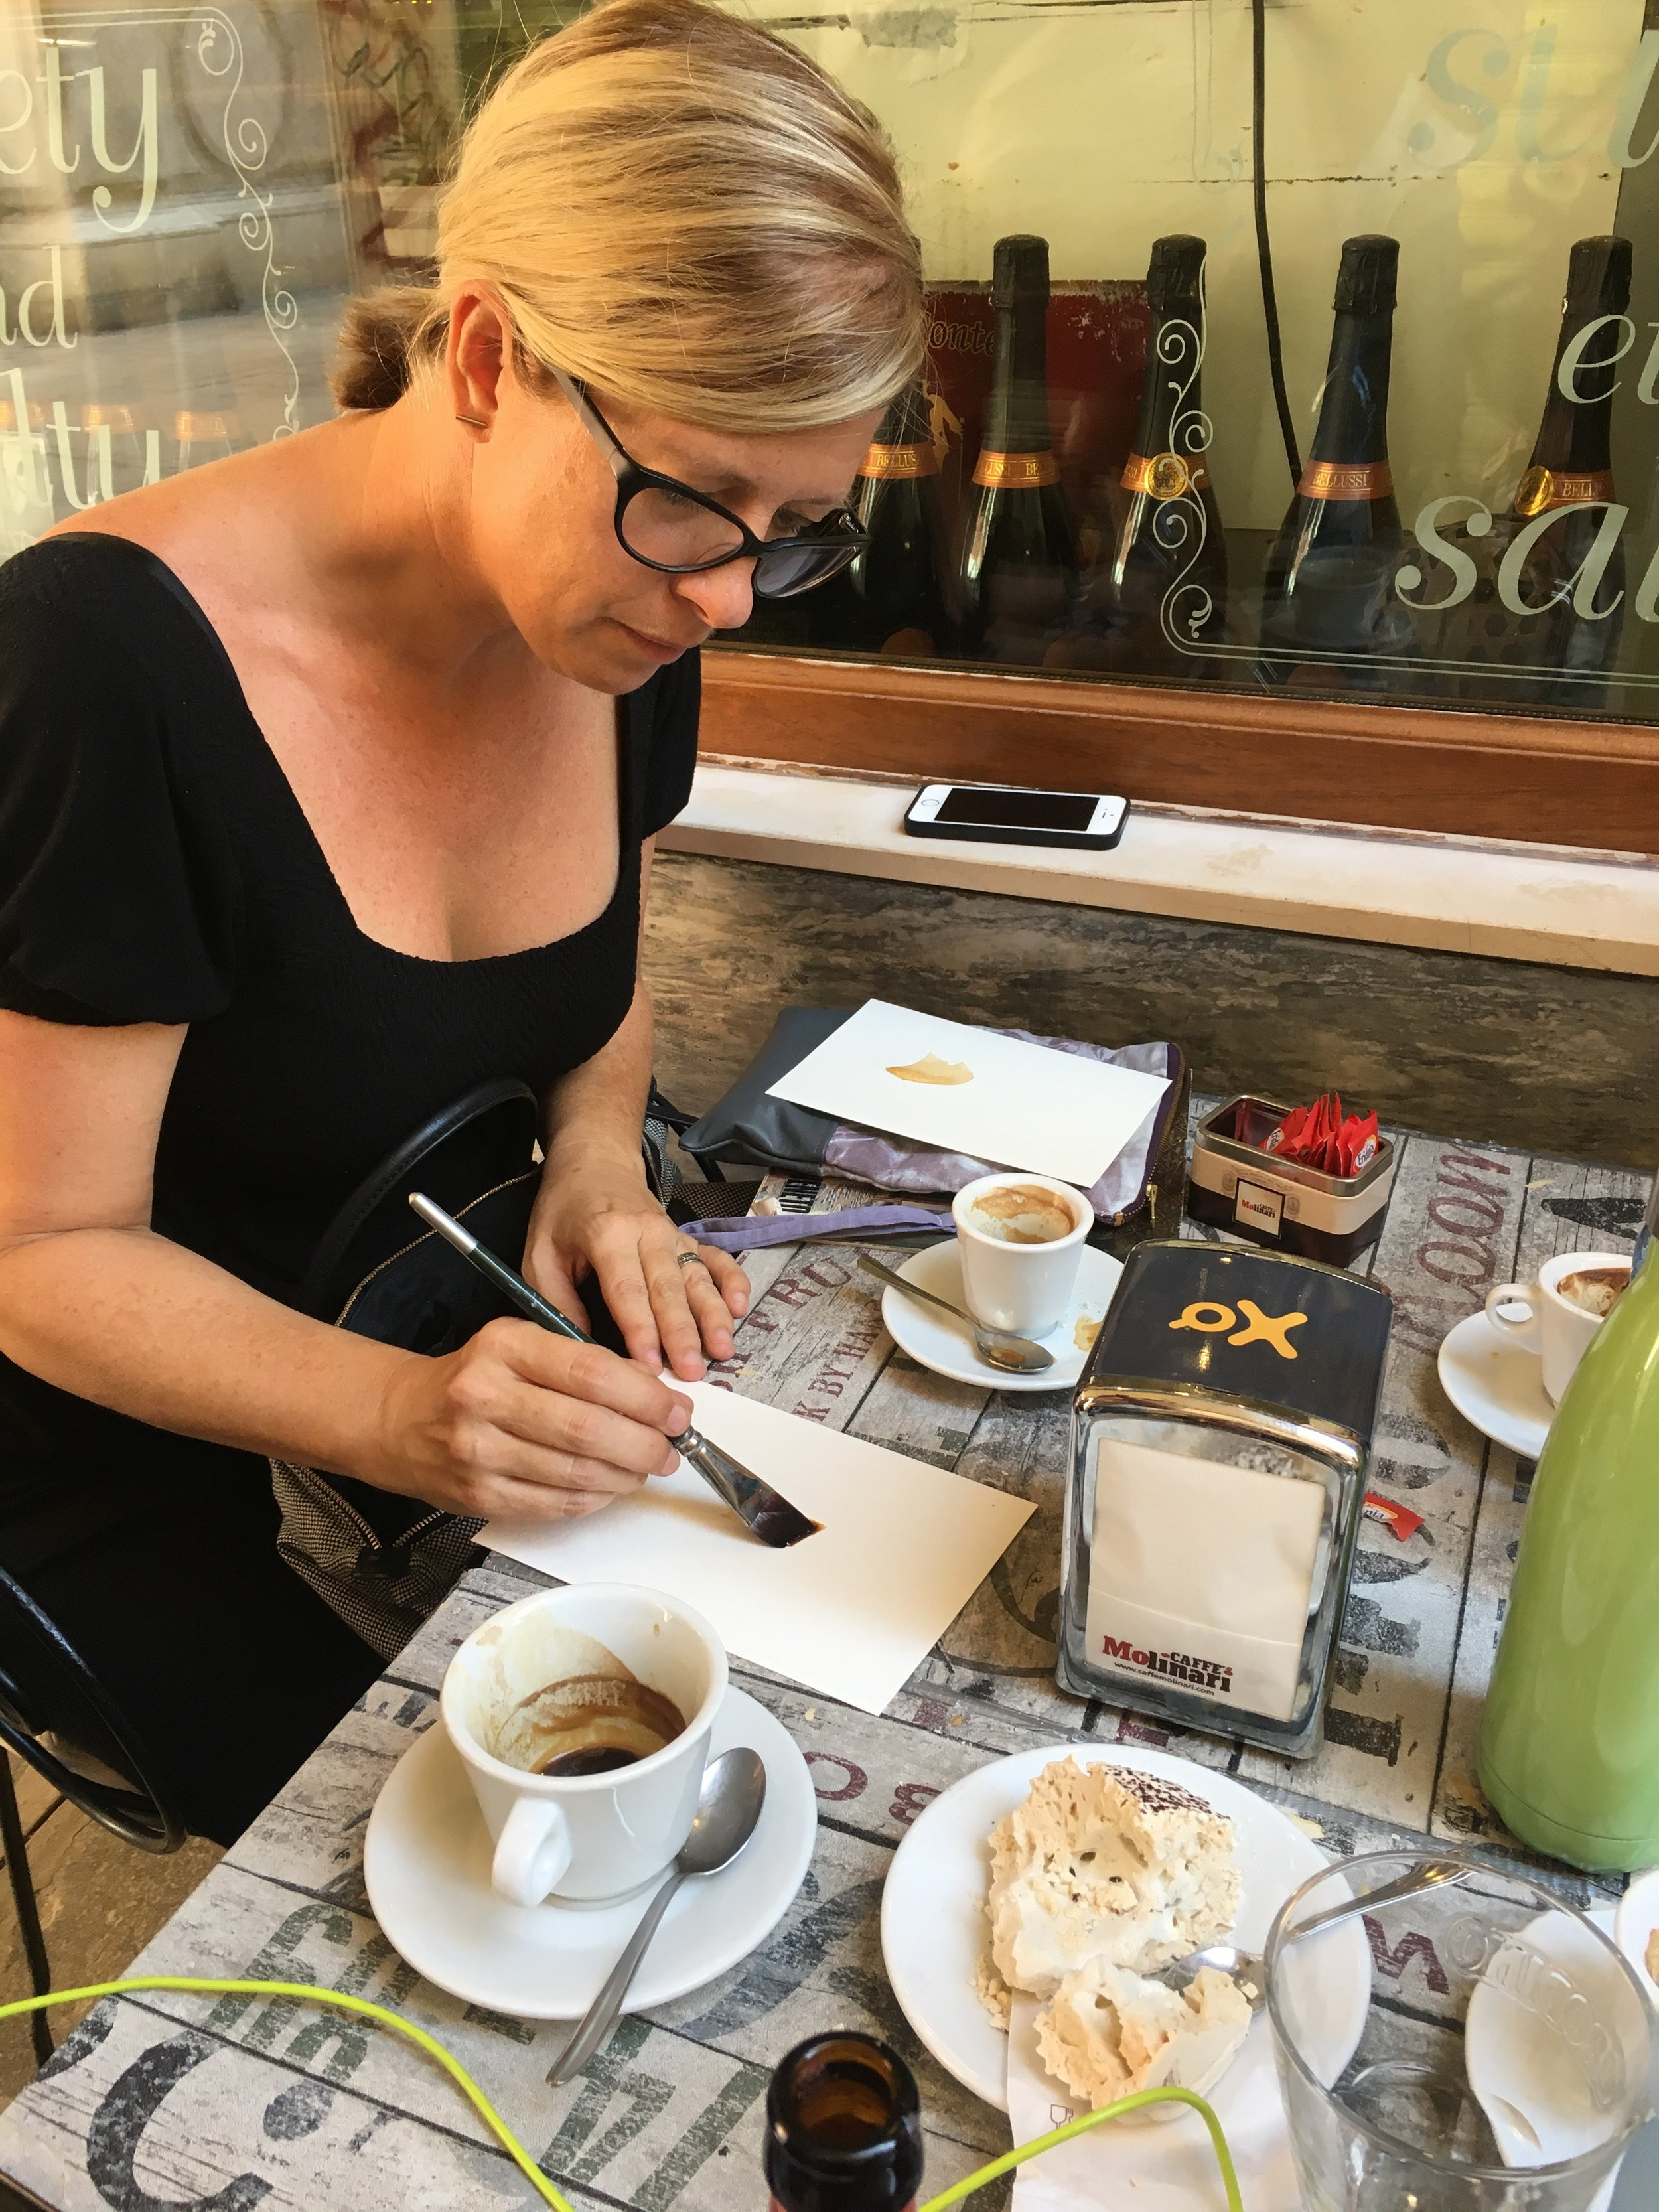 Danielle Krysa painting with coffee in a Venetian café